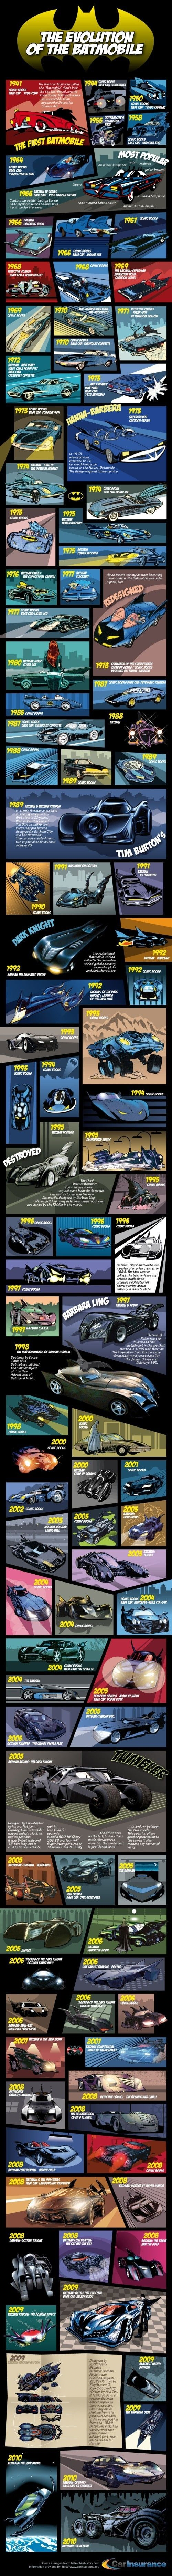 The Batmobile has always been the trademark vehicle for Batman. However, throughout the history of the comic, the Batmobile has undergone some changes to its design and gadgets. Here's an overview of some of the evolutions of the Batmobile. nice...